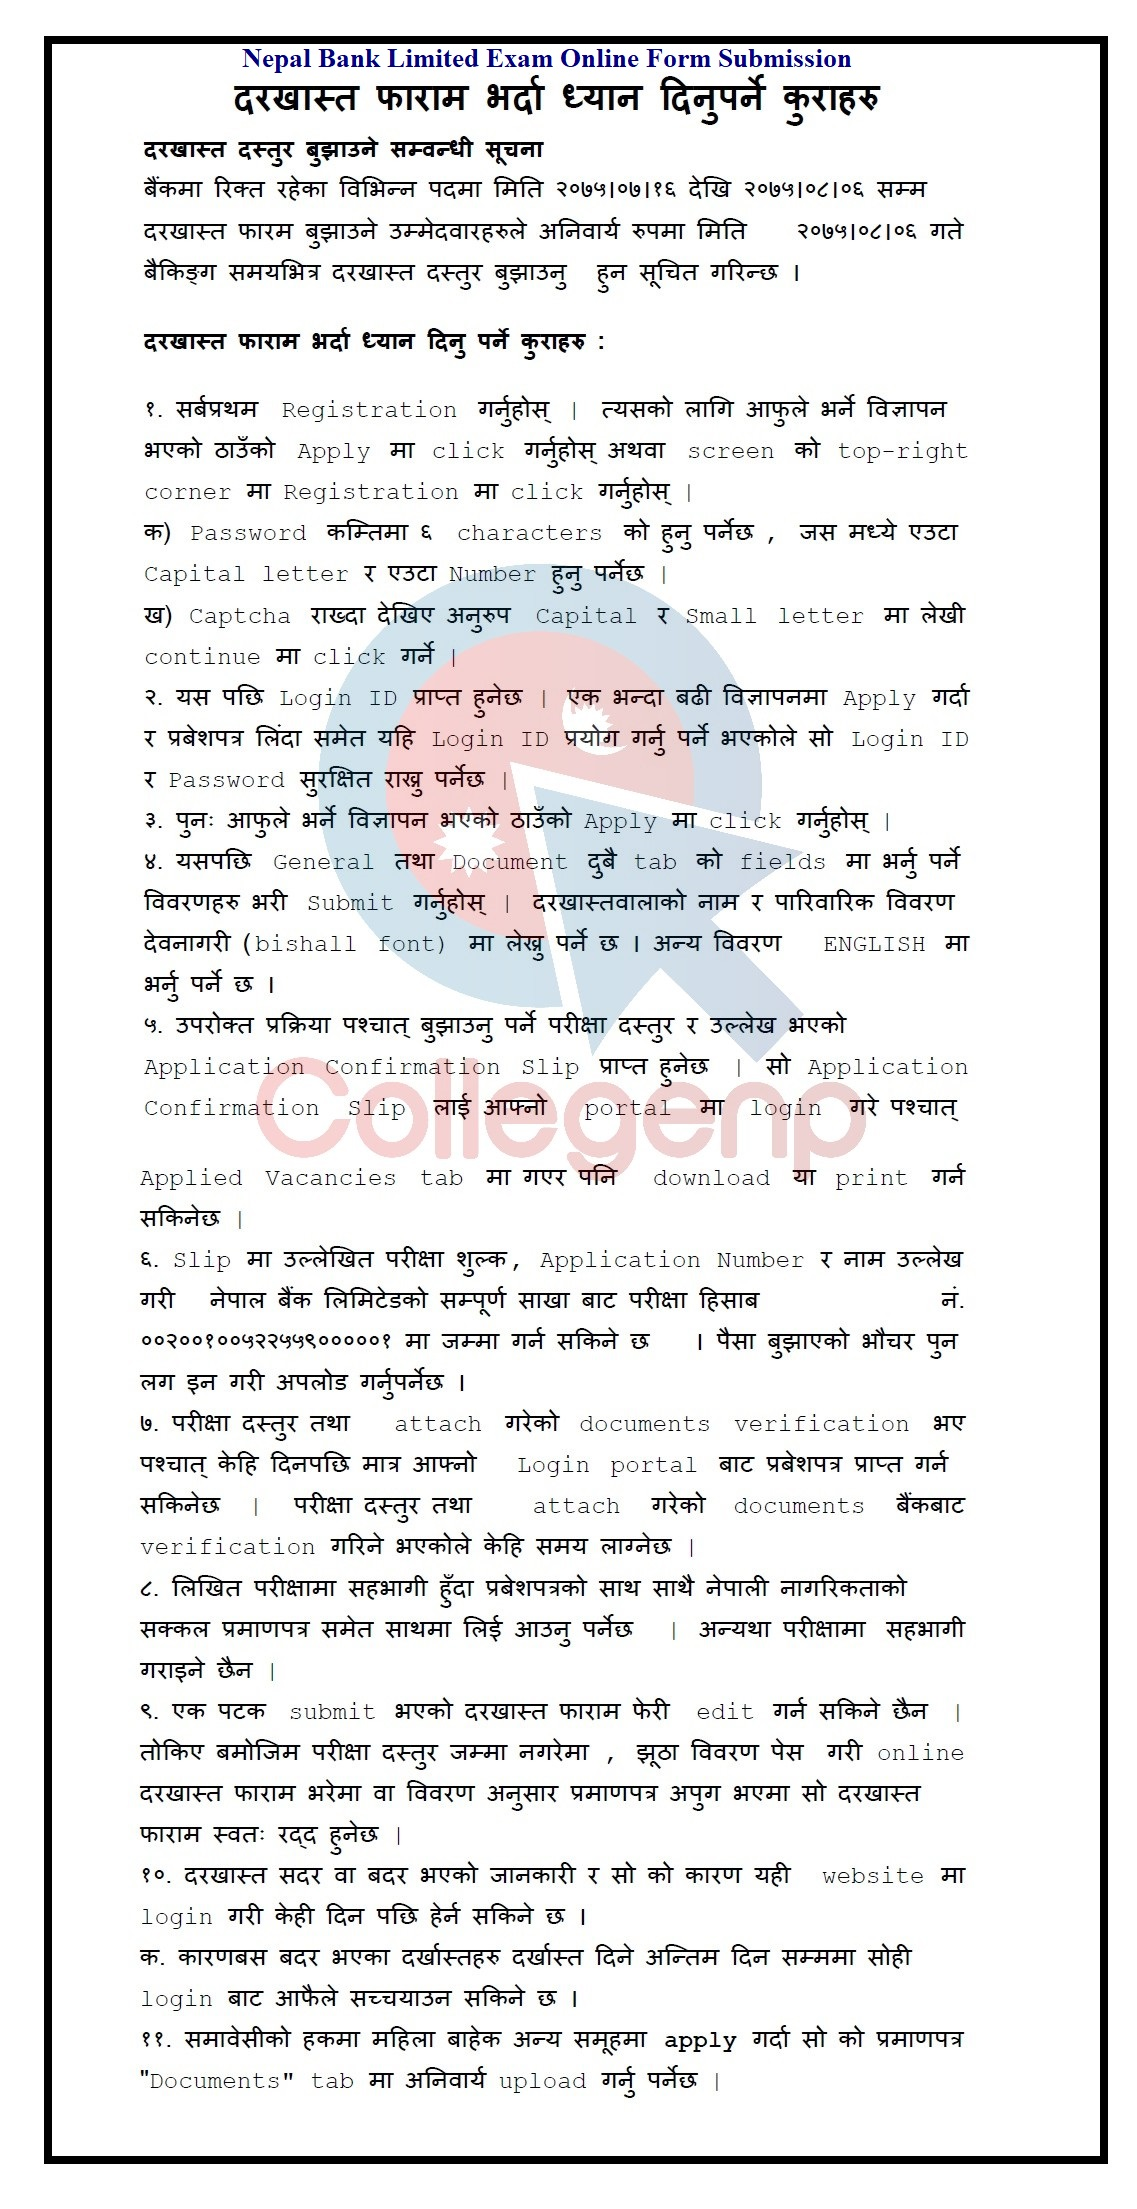 How to apply for Nepal Bank Limited Exam